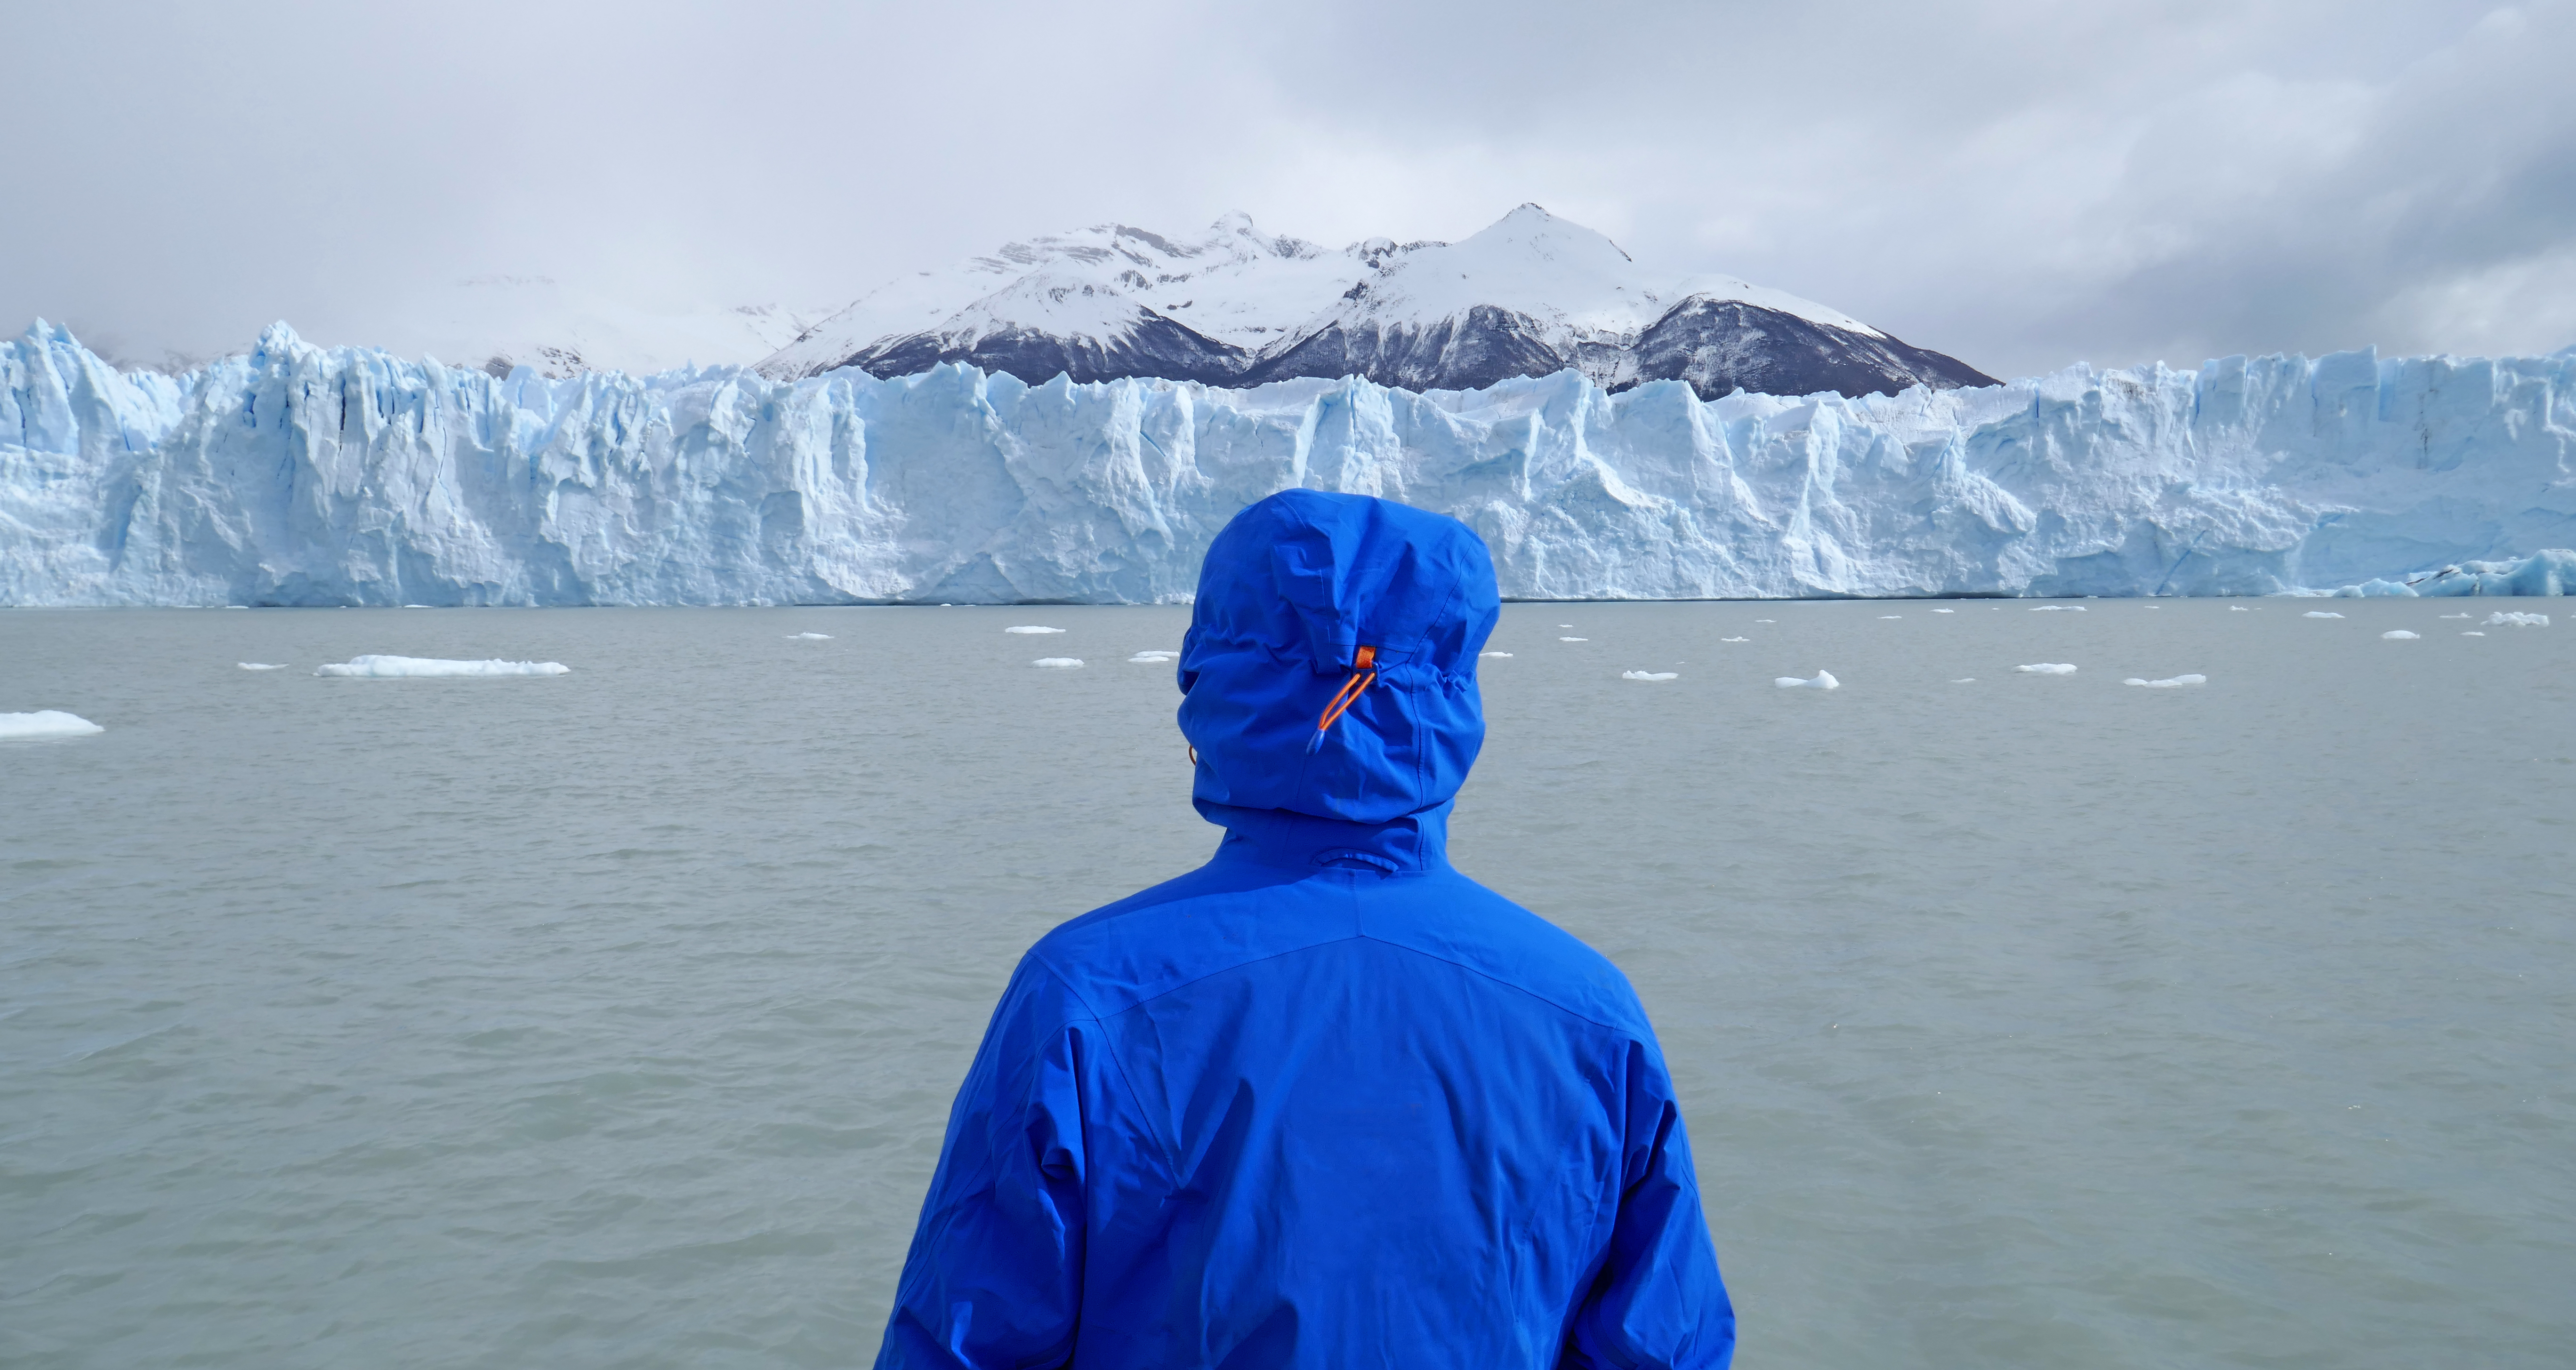 Glacial retreat due to climate change